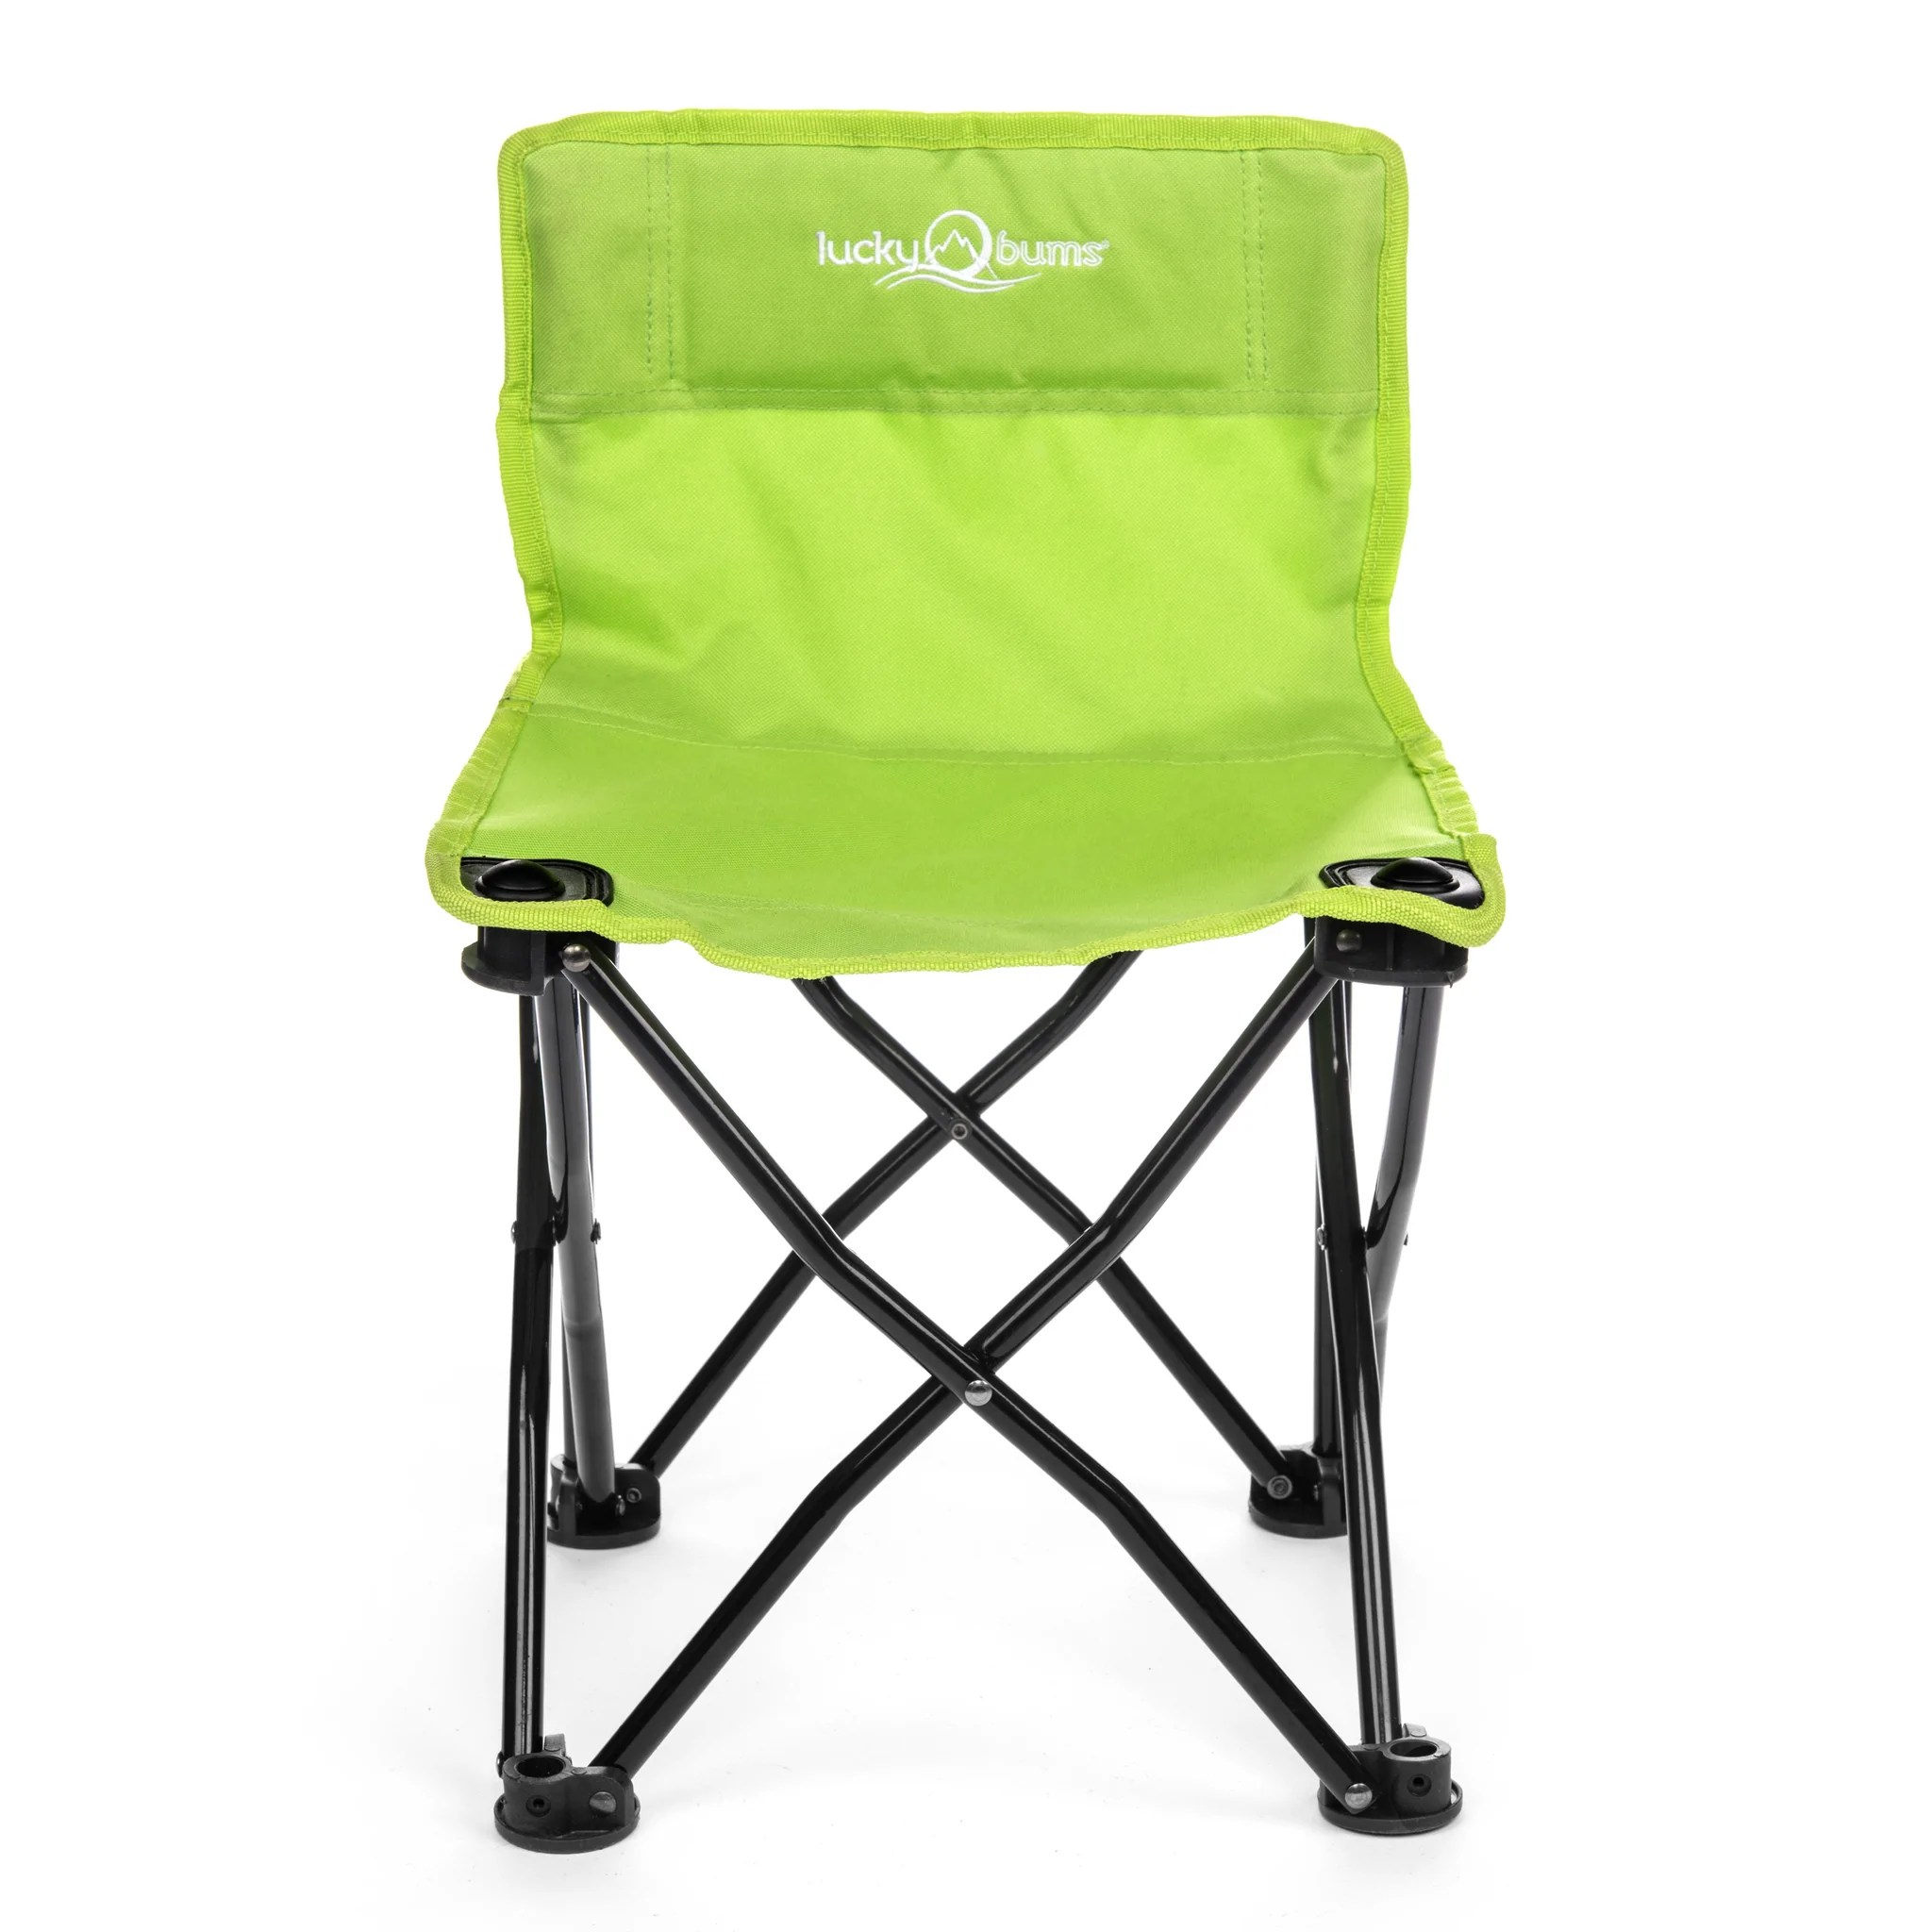 lucky bums camp chair boon high tray dishwasher kids quick folding